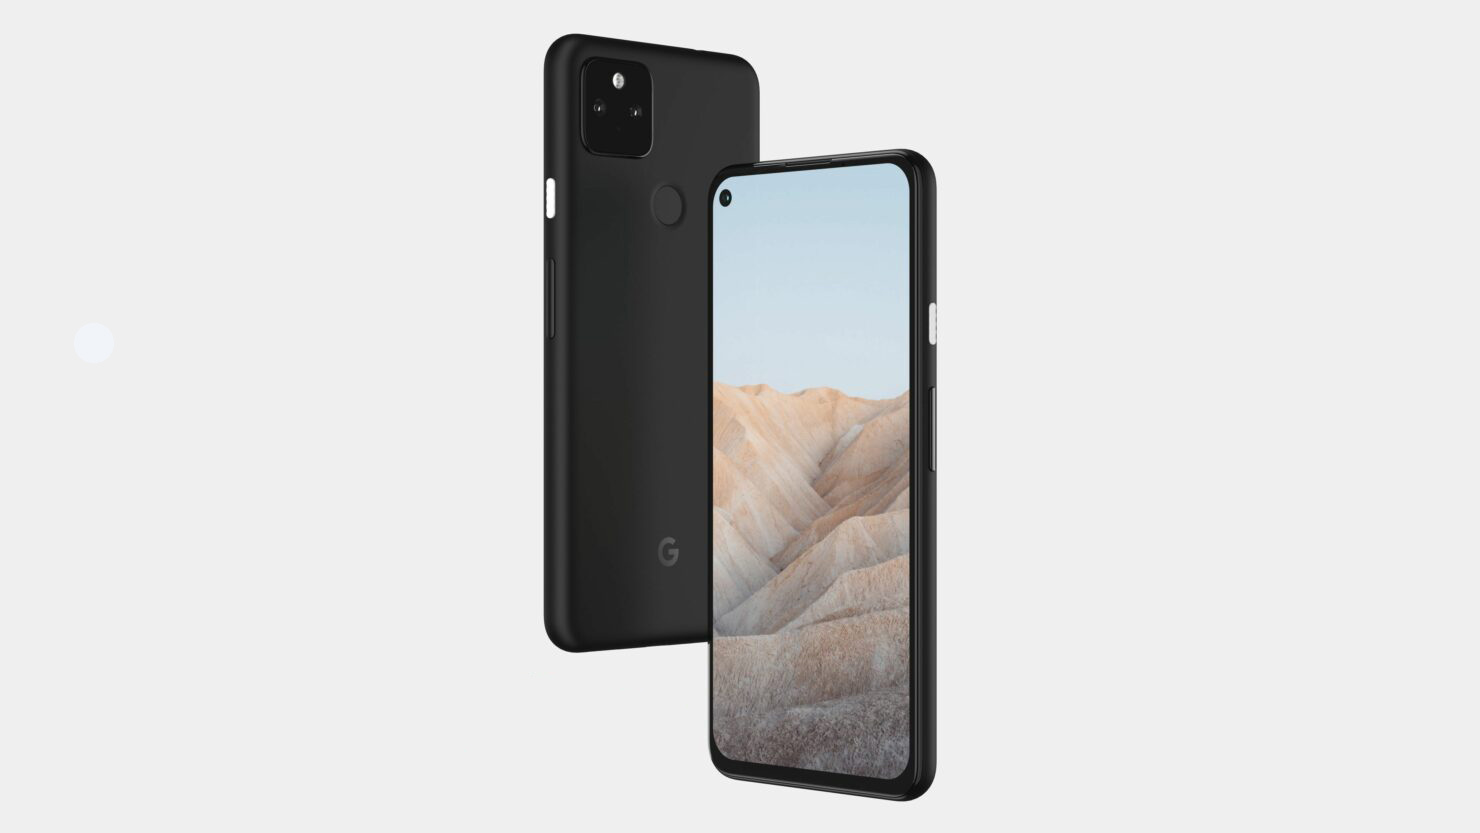 Pixel 5a Rumored to Be Canceled Due to the Ongoing Chip Shortage, With Google Expected to Continue Pixel 4a Sales